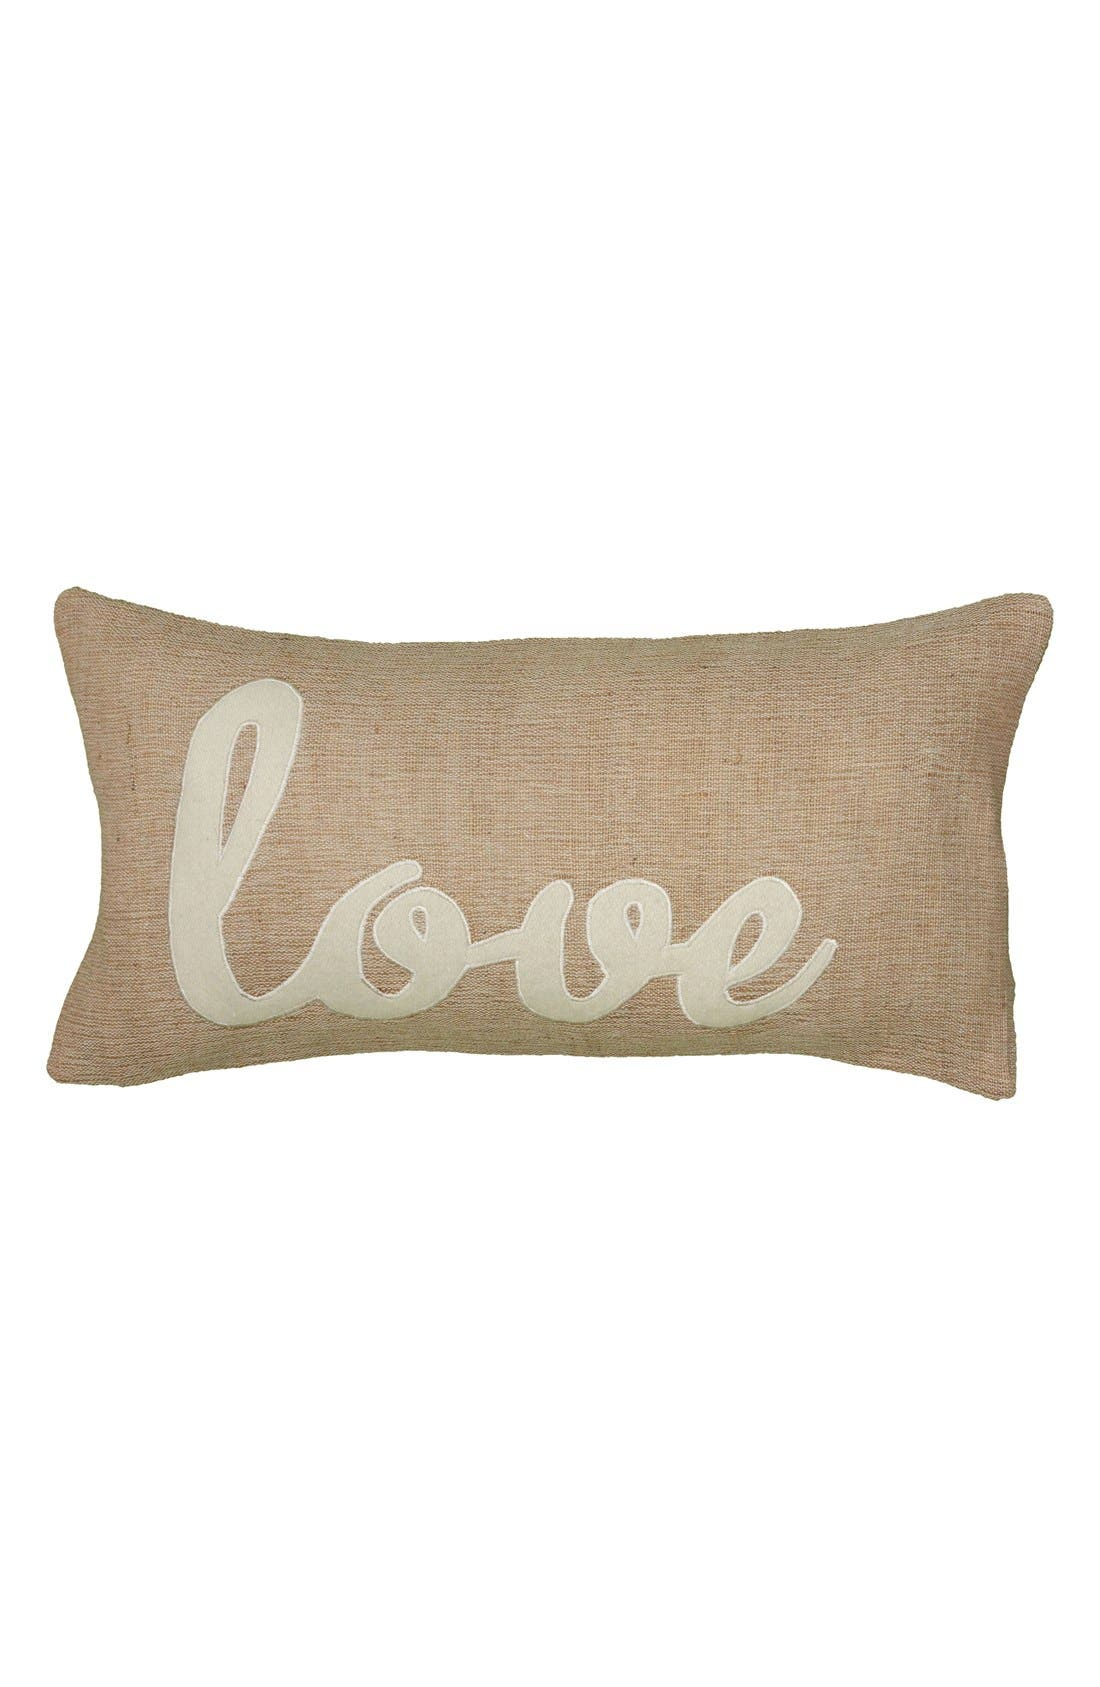 Alternate Image 1 Selected - Rizzy Home 'Love' Accent Pillow